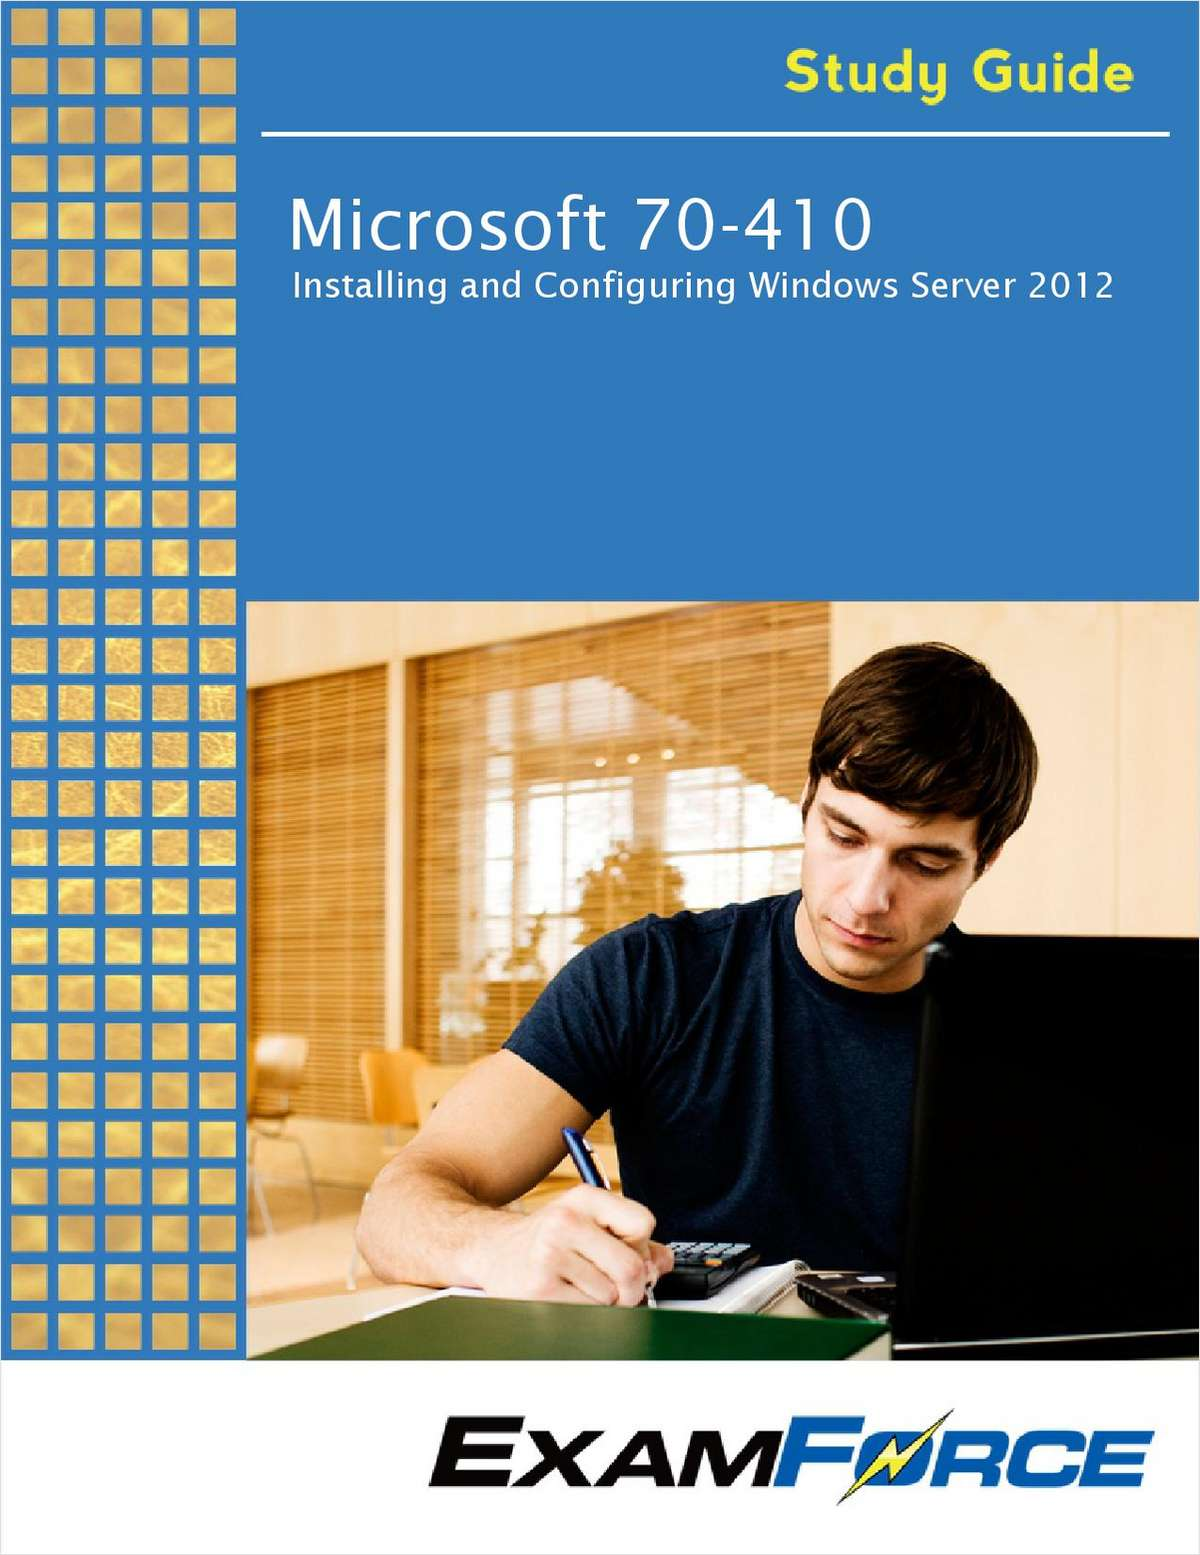 Microsoft 70-410: Installing and Configuring Windows Server 2012 (FREE Study Guide)